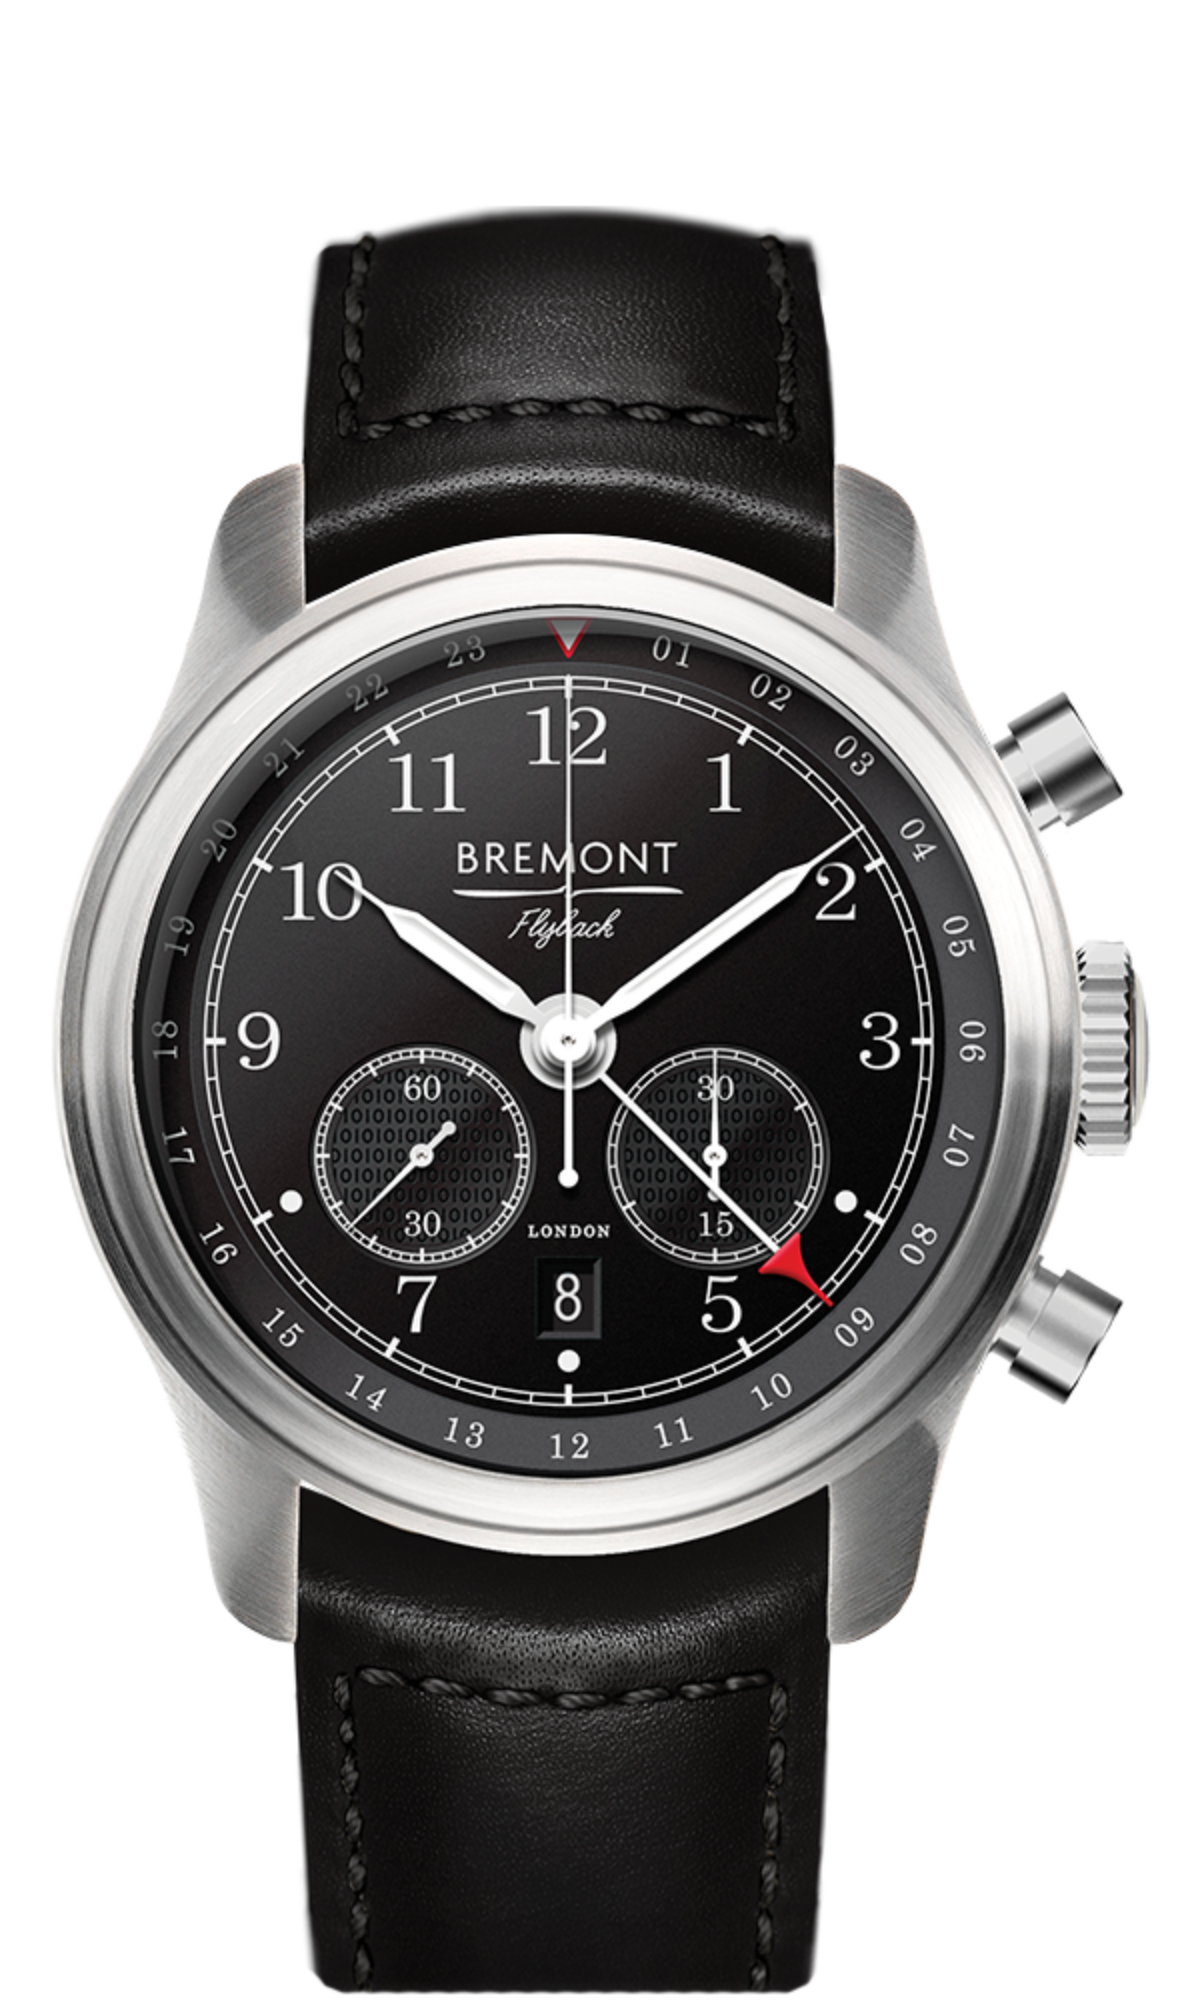 Codebreaker Limited Edition   Bremont Chronometers